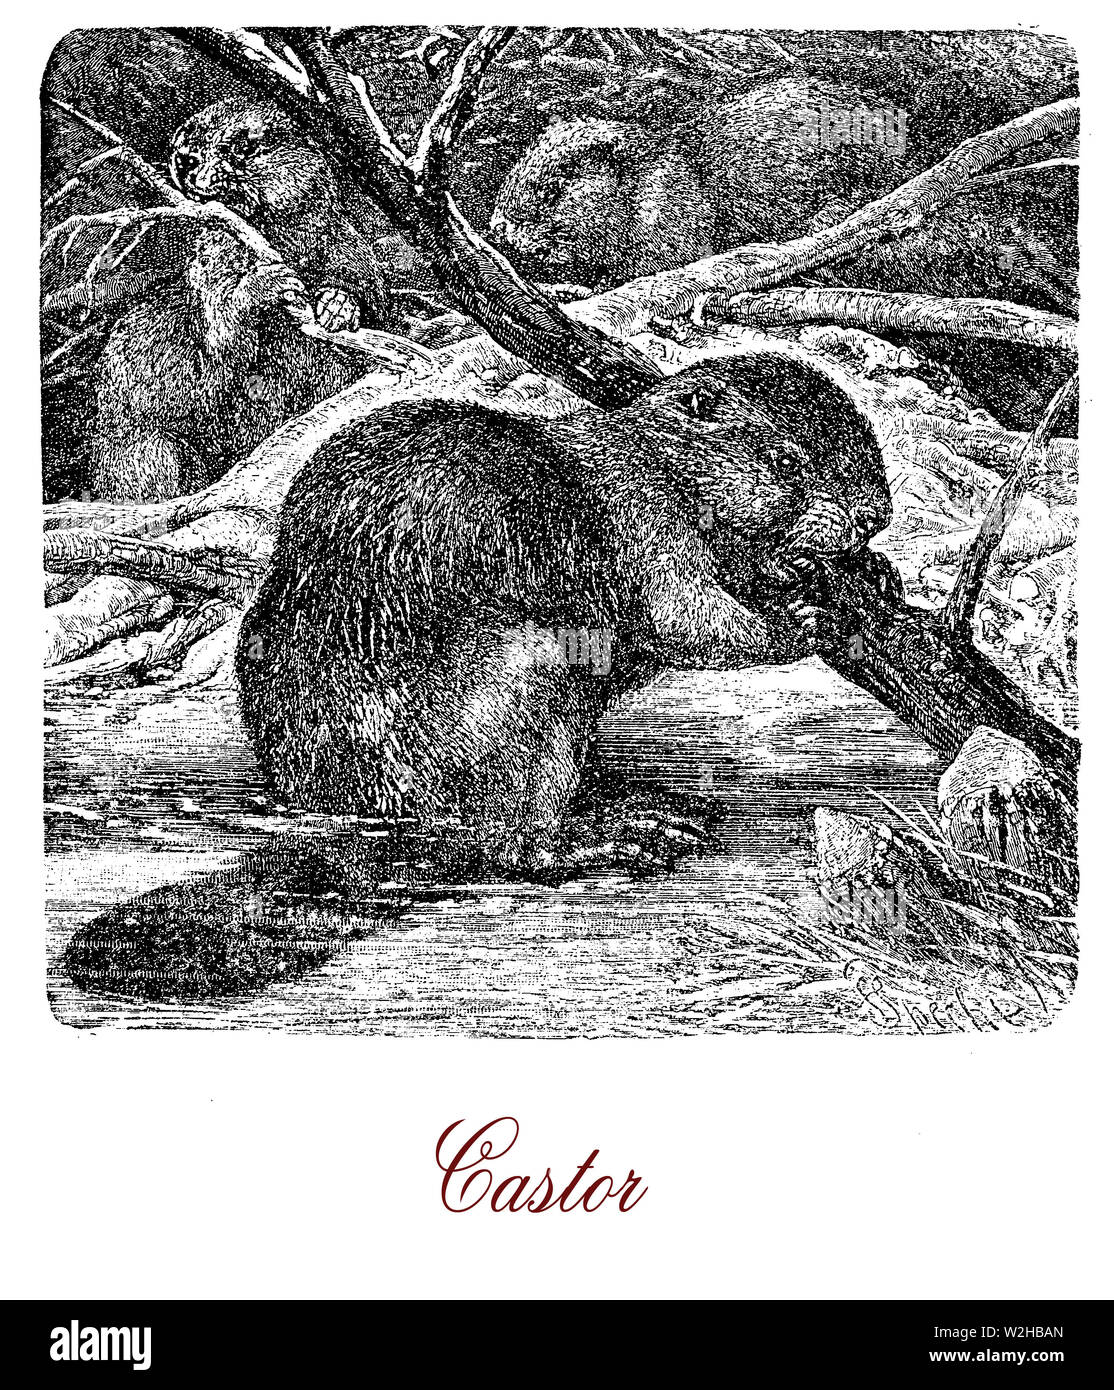 Beaver is a large,  nocturnal, semiaquatic rodent with sleek body and webbed hind feet,  more agile in the water than on land with the help of the tail flattened and scaly - Stock Image